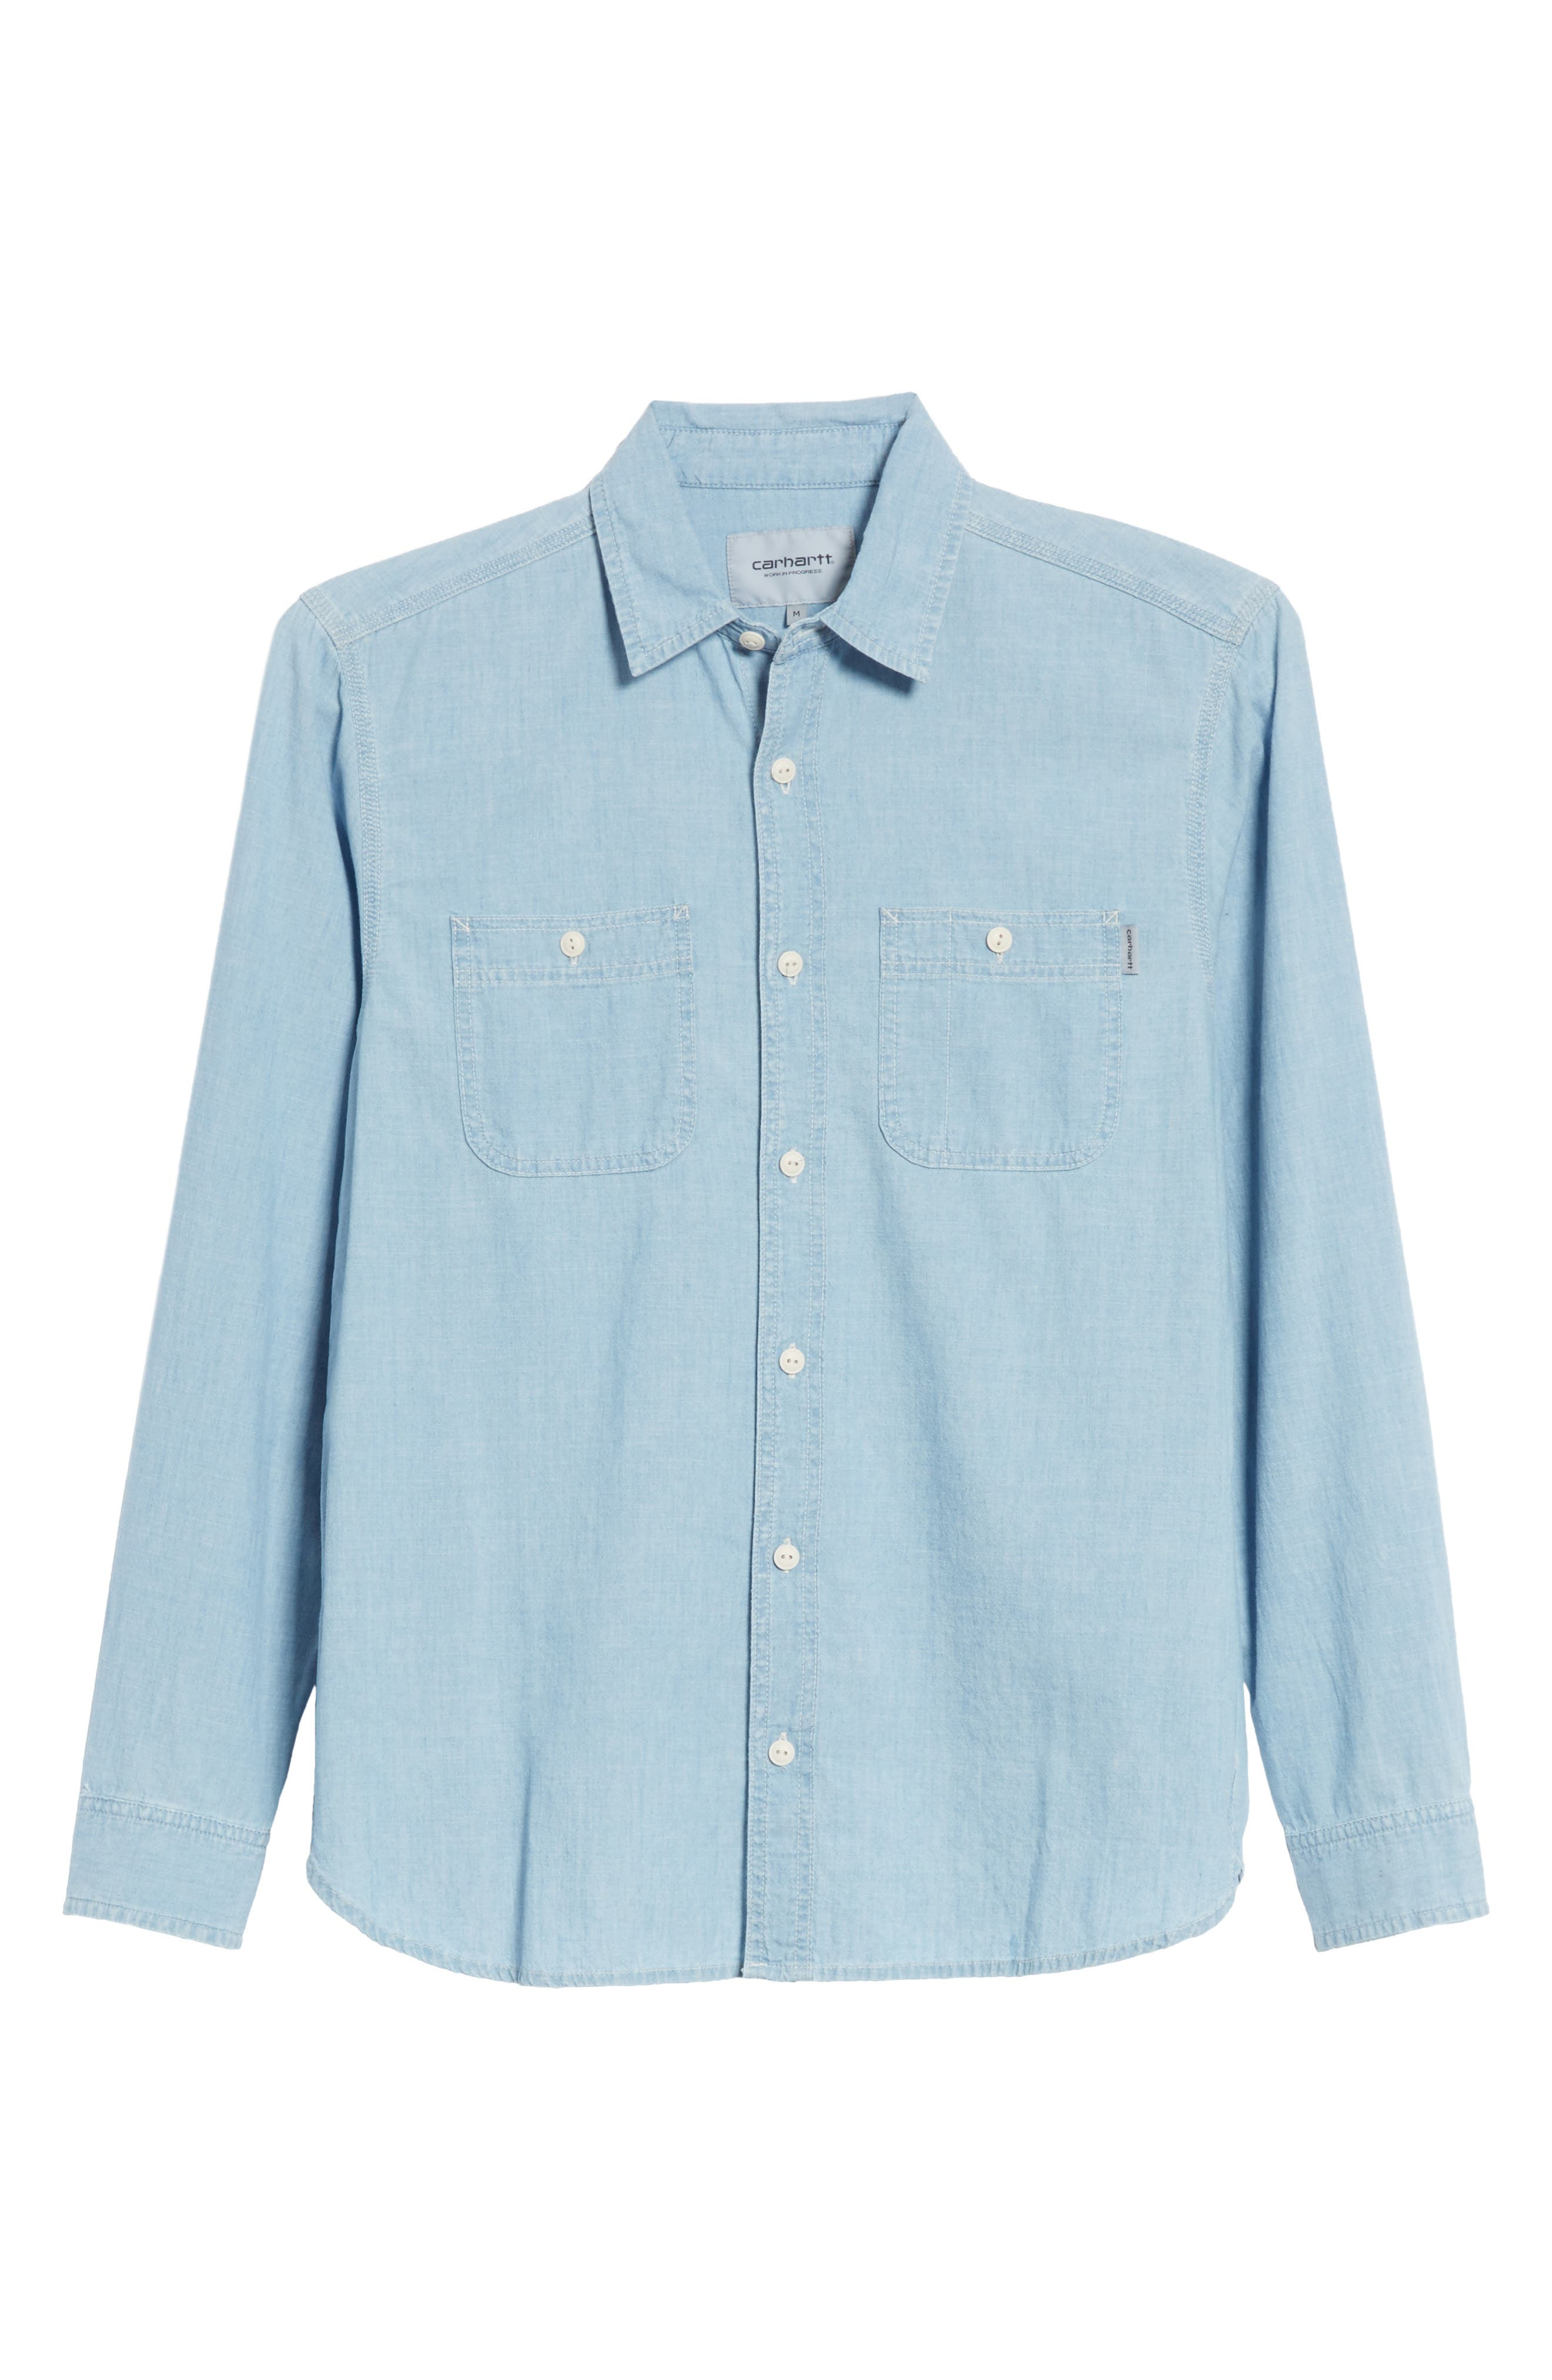 Clink Chambray Shirt,                             Alternate thumbnail 6, color,                             Blue Stone Washed